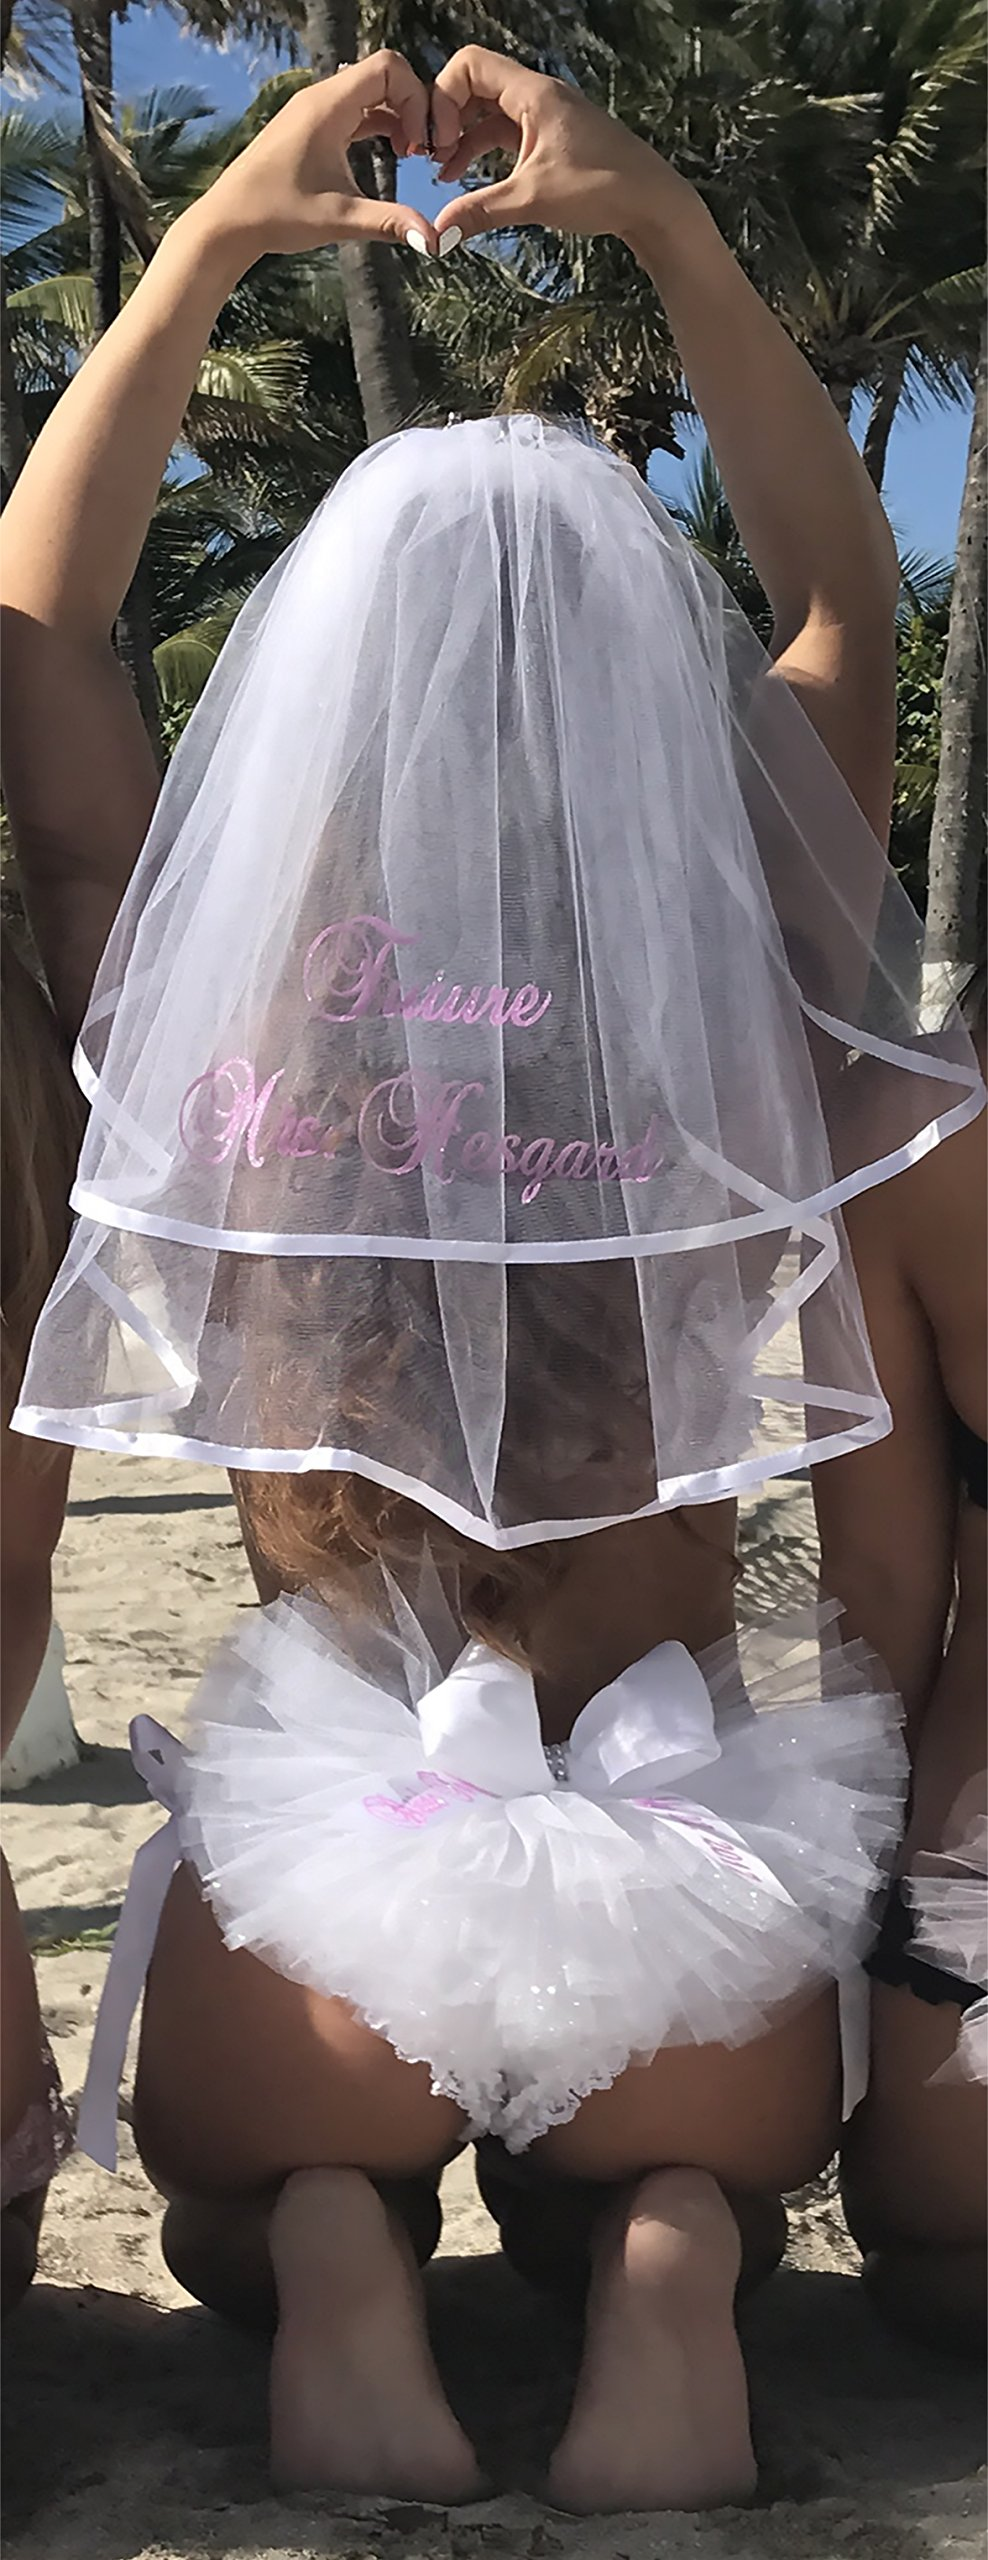 Bride's Booty Veil and Hair Veil (Booty Cover, Bikini Veil, Butt Veil) PERSONALIZED 2 piece set for only $55. this is an $60.00 VALUE (if purchased separately)